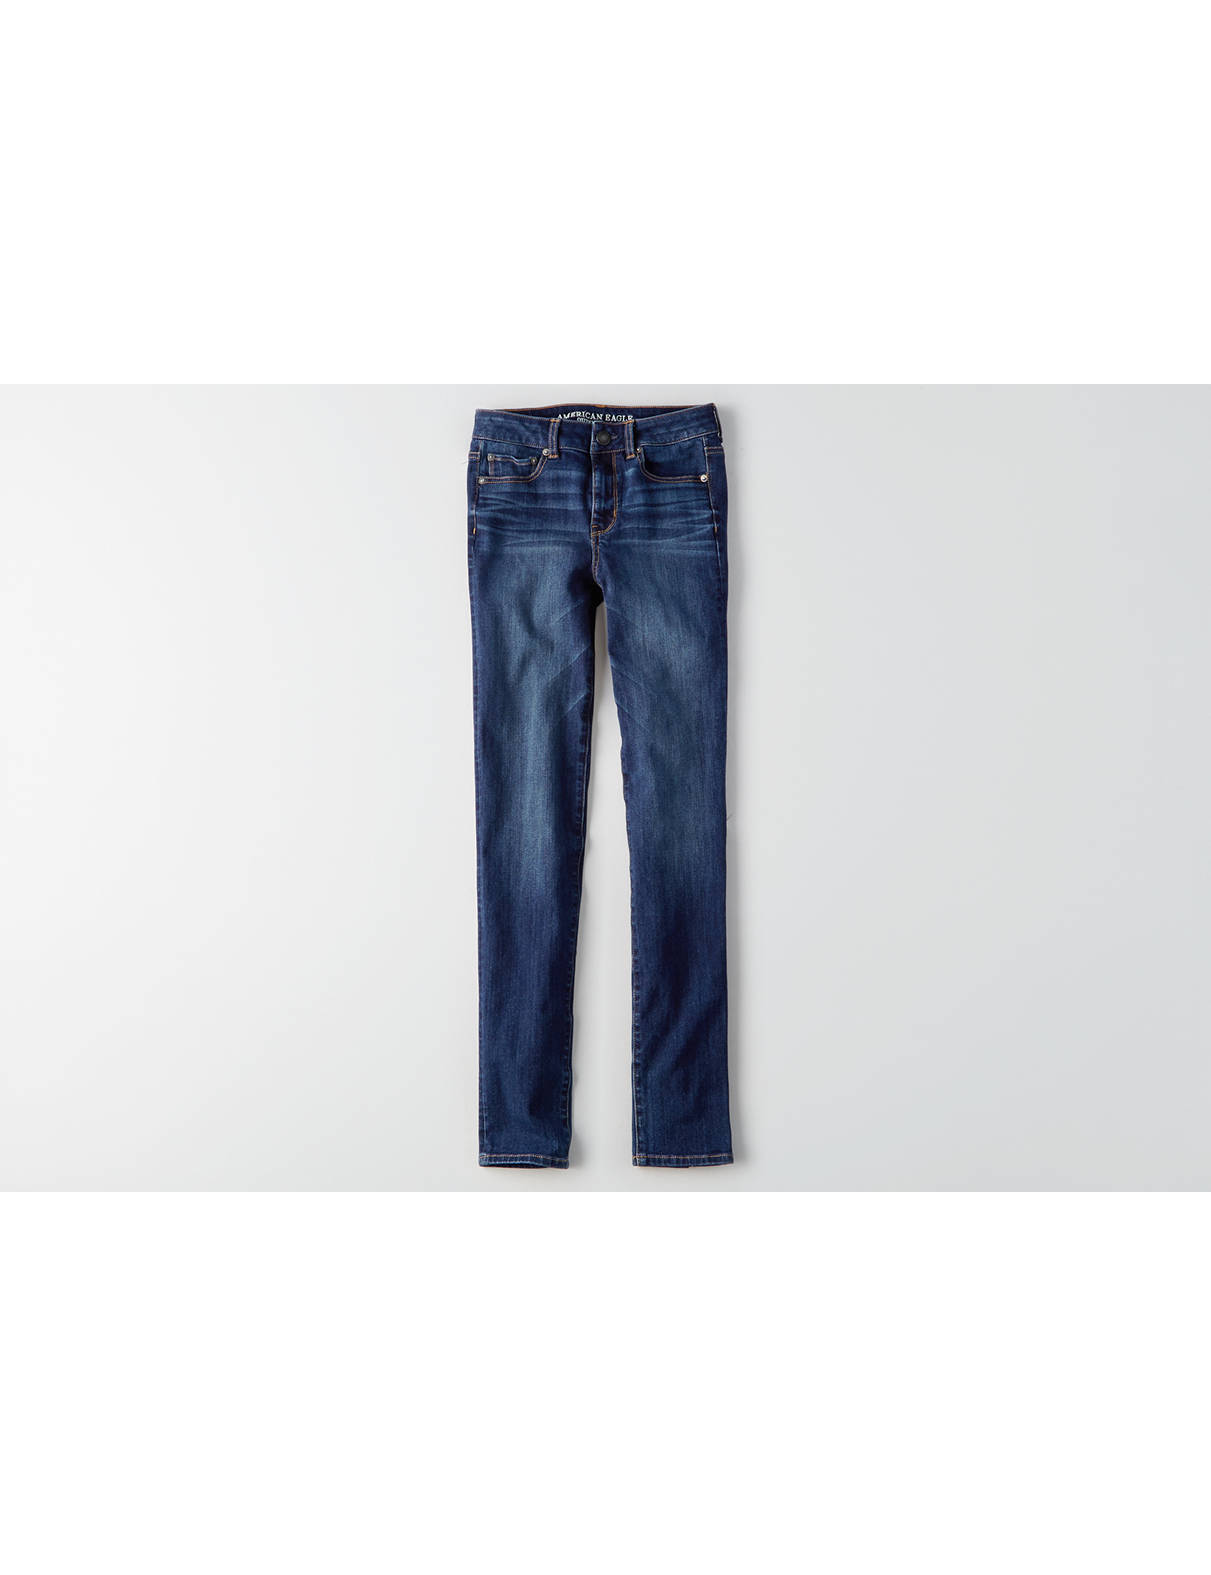 Display product reviews for AEO Denim X4 Hi-Rise Straight Jean - Hi-Rise Skinny Jeans American Eagle Outfitters